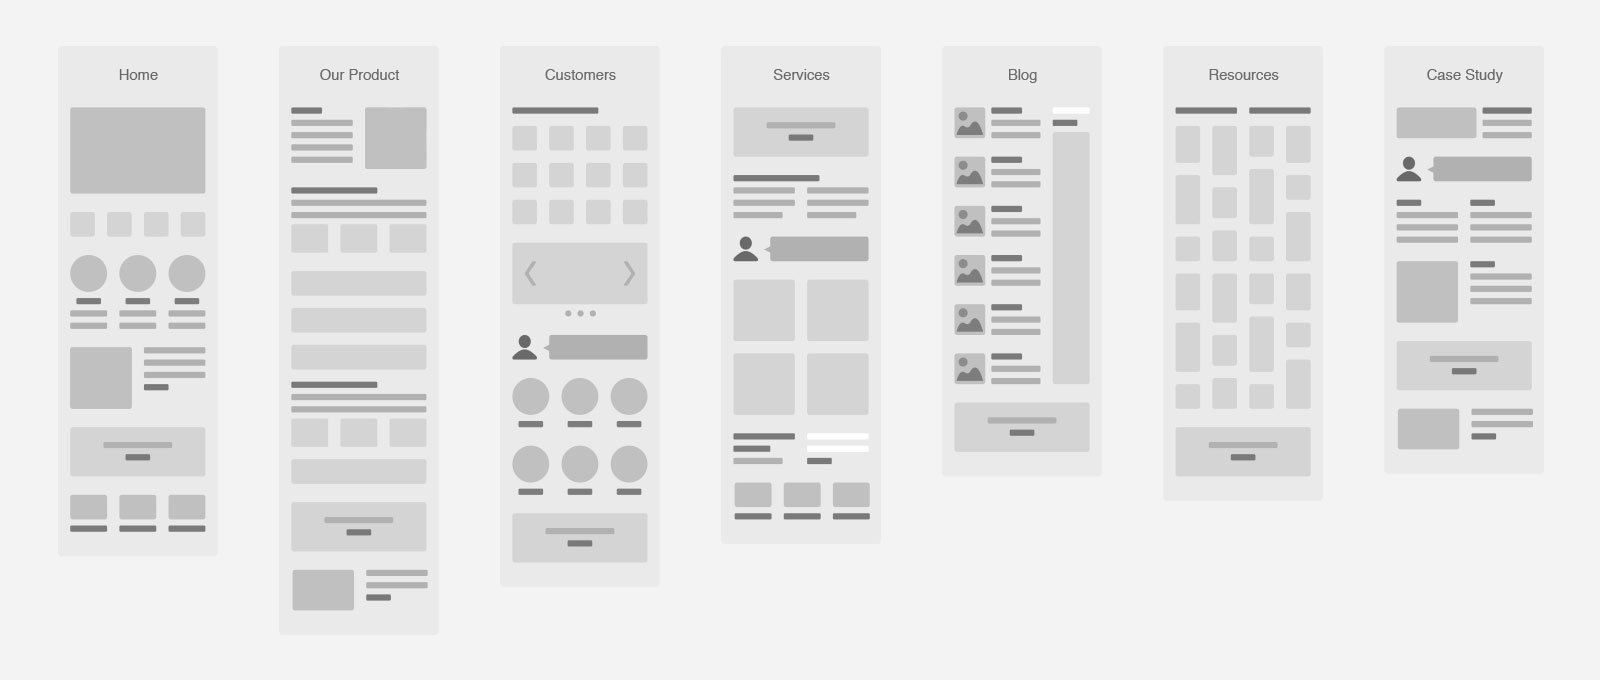 wireframes low fidelity vs high fidelity approaches to web design